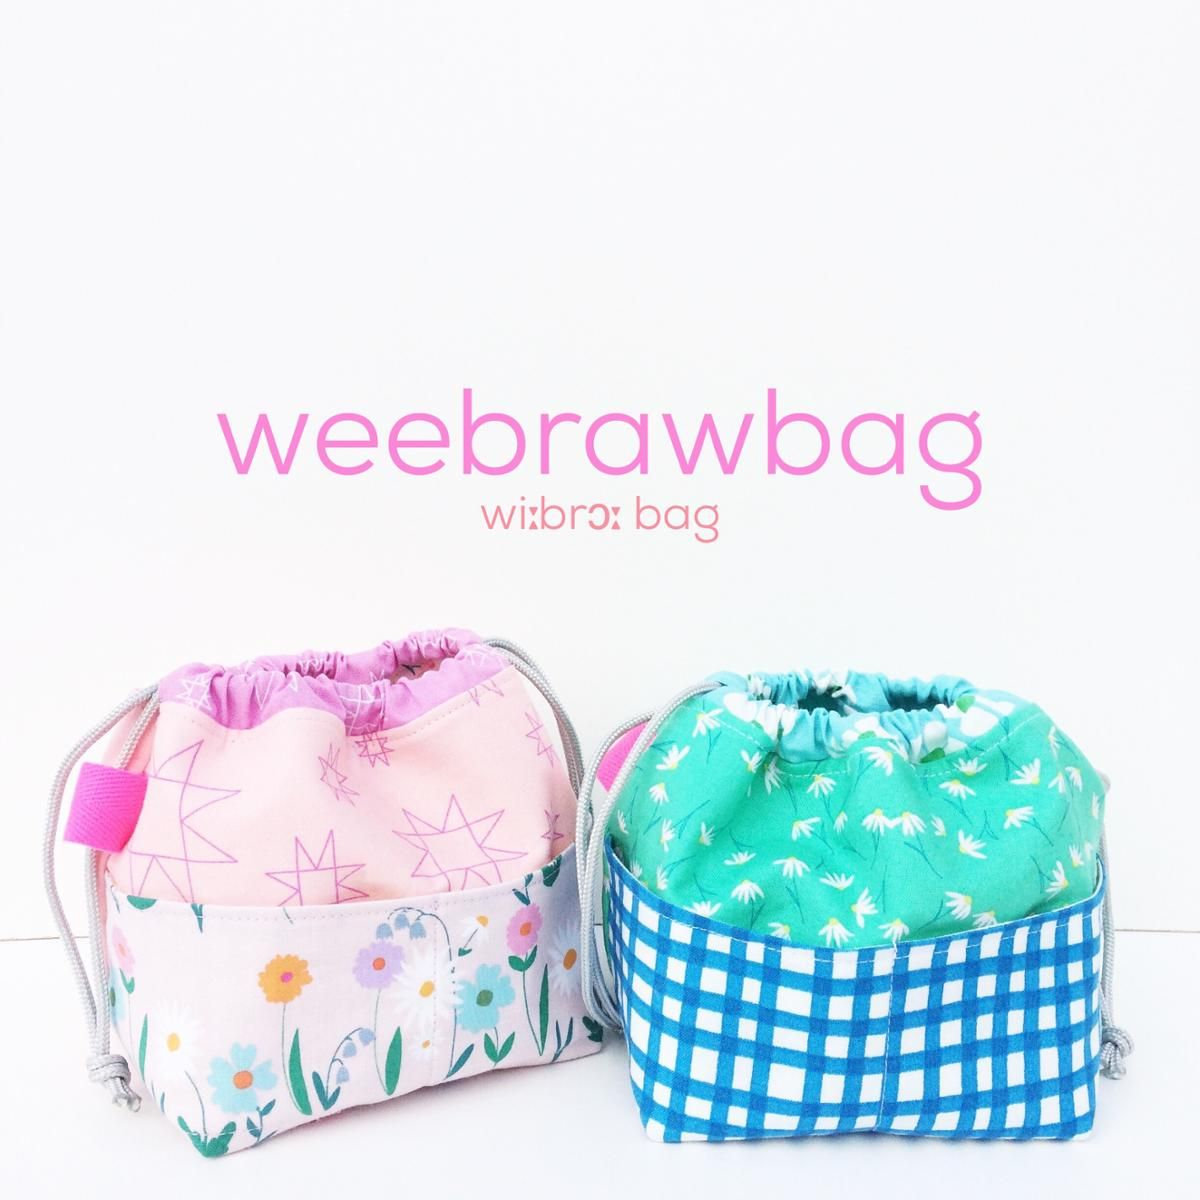 Weebrawbag- Pattern is E-mailed to You